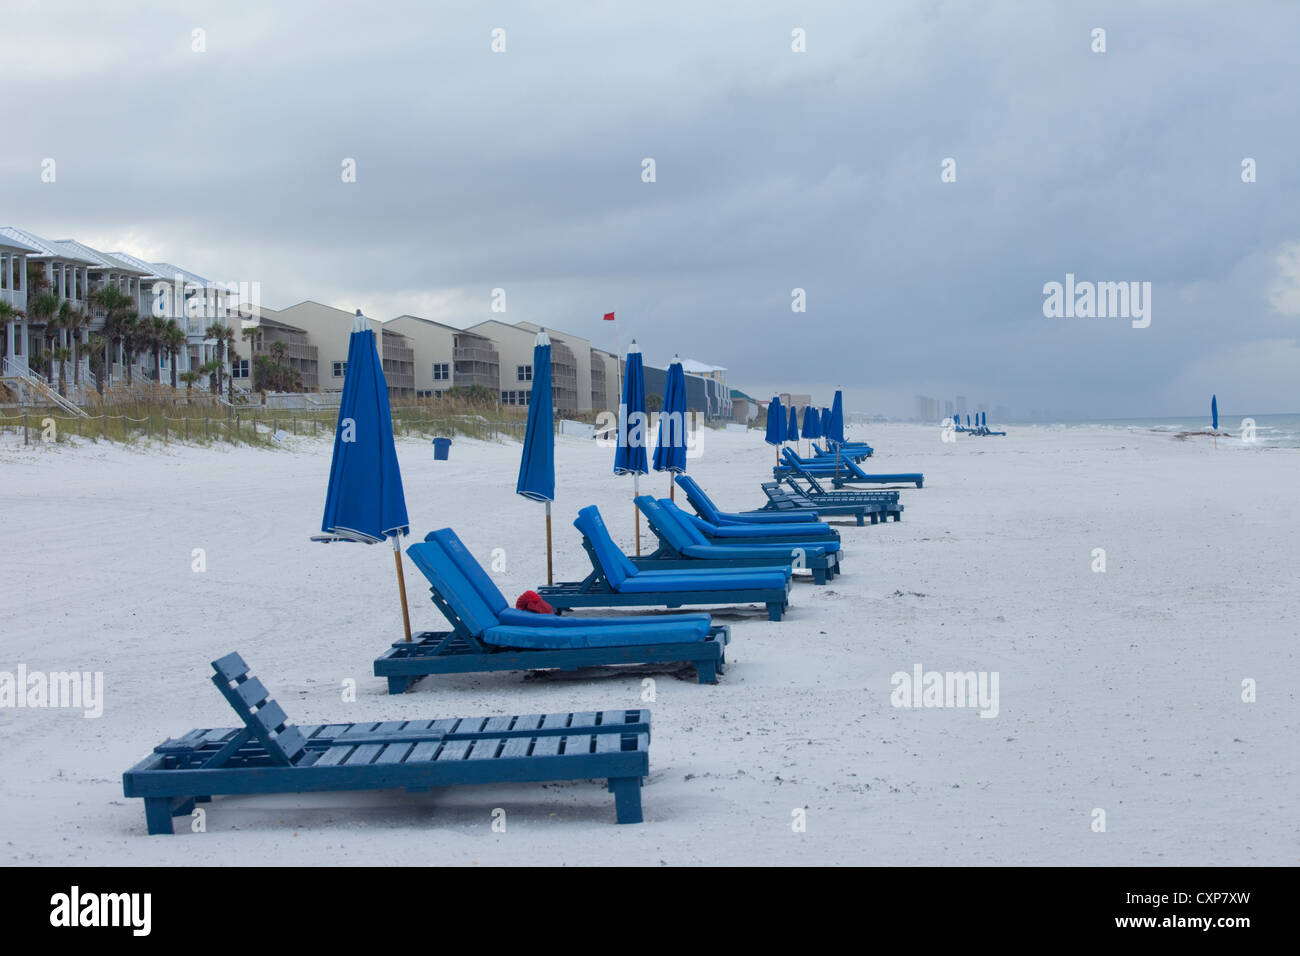 Beach chairs and umbrellas on a beach in the winter, Panama City, Florida - Stock Image